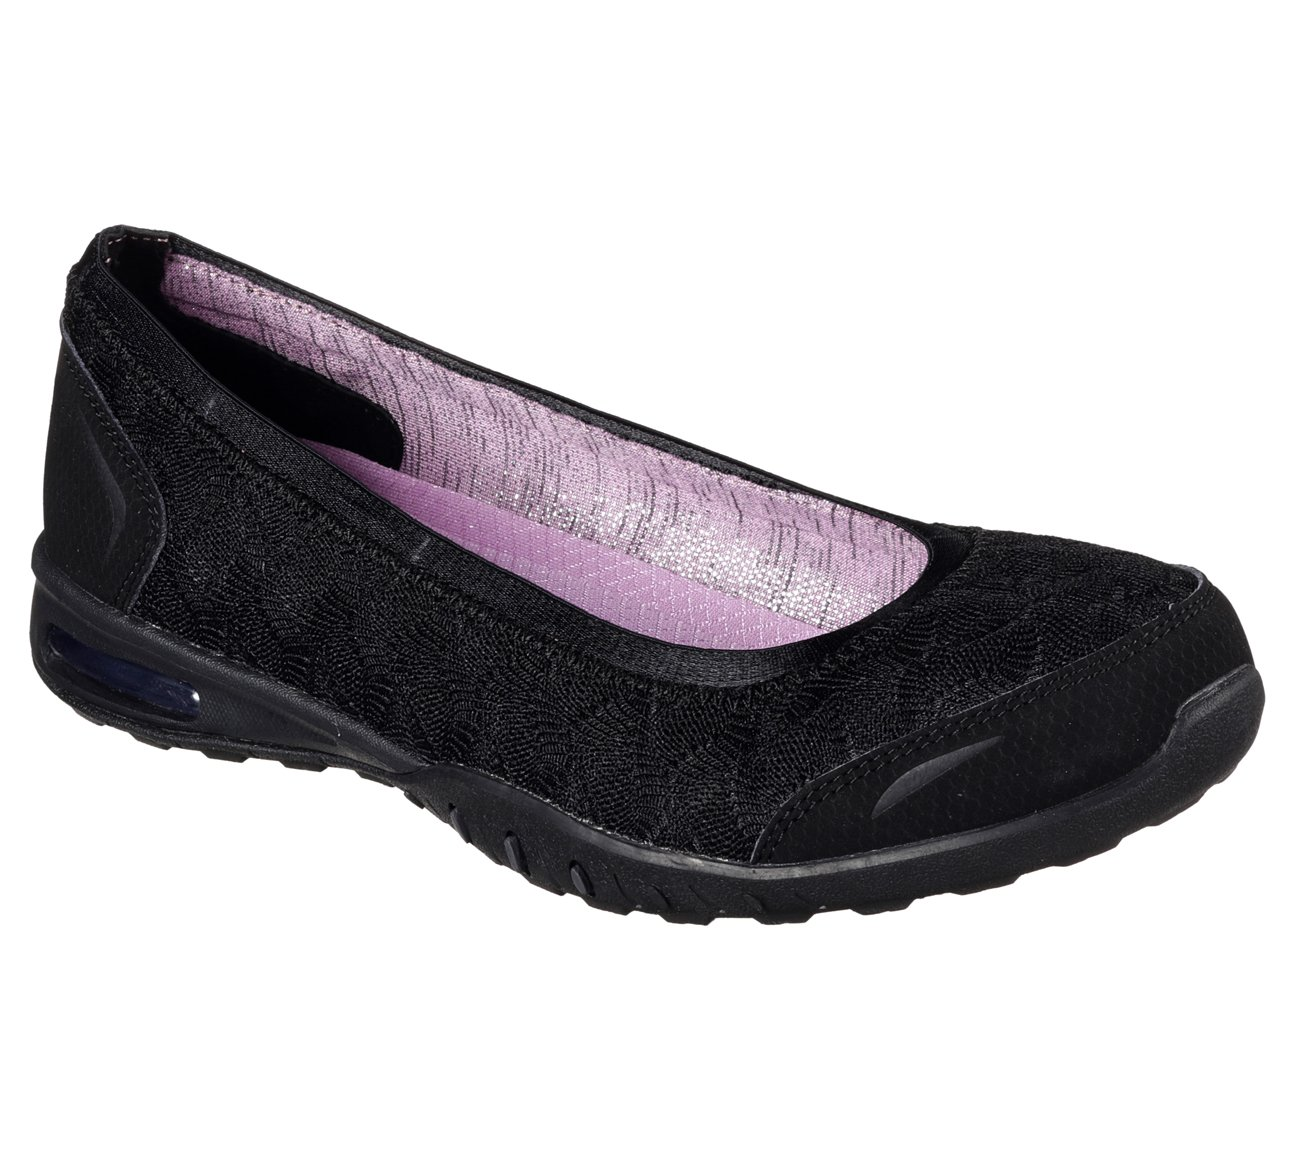 Skechers Relaxed Fit Easy Air Join Me Womens Ballet Flat Skimmers B01M0D7X0E 8 B(M) US|Black